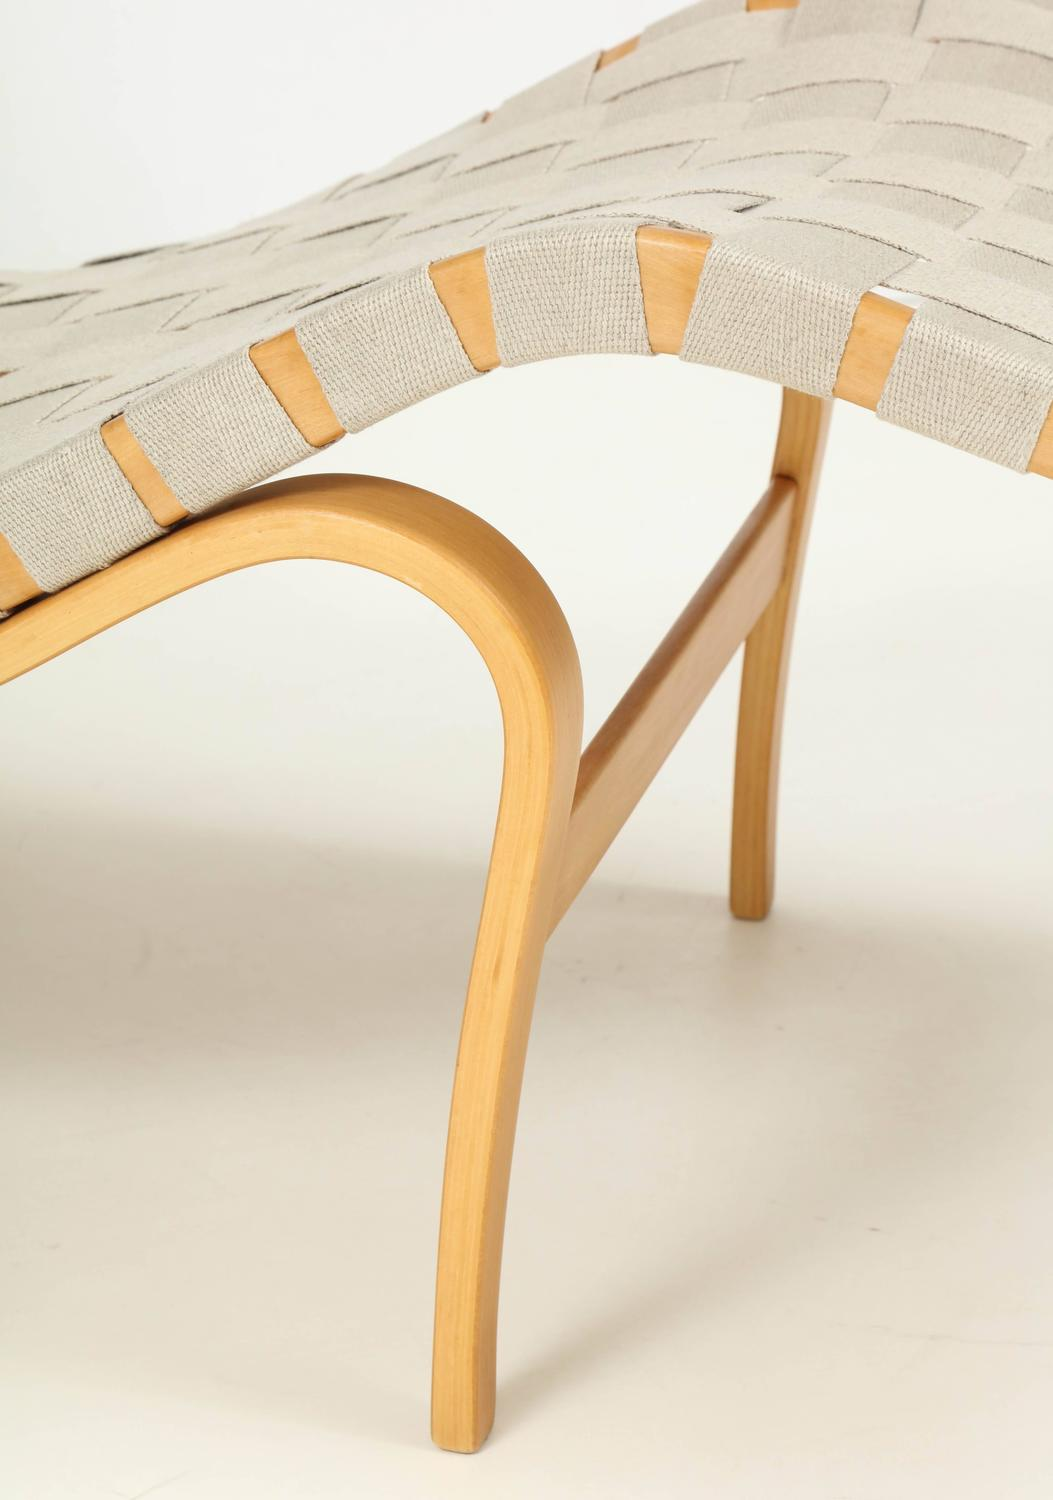 Bruno mathsson chaise longue at 1stdibs for 1 zitsbank met chaise longue